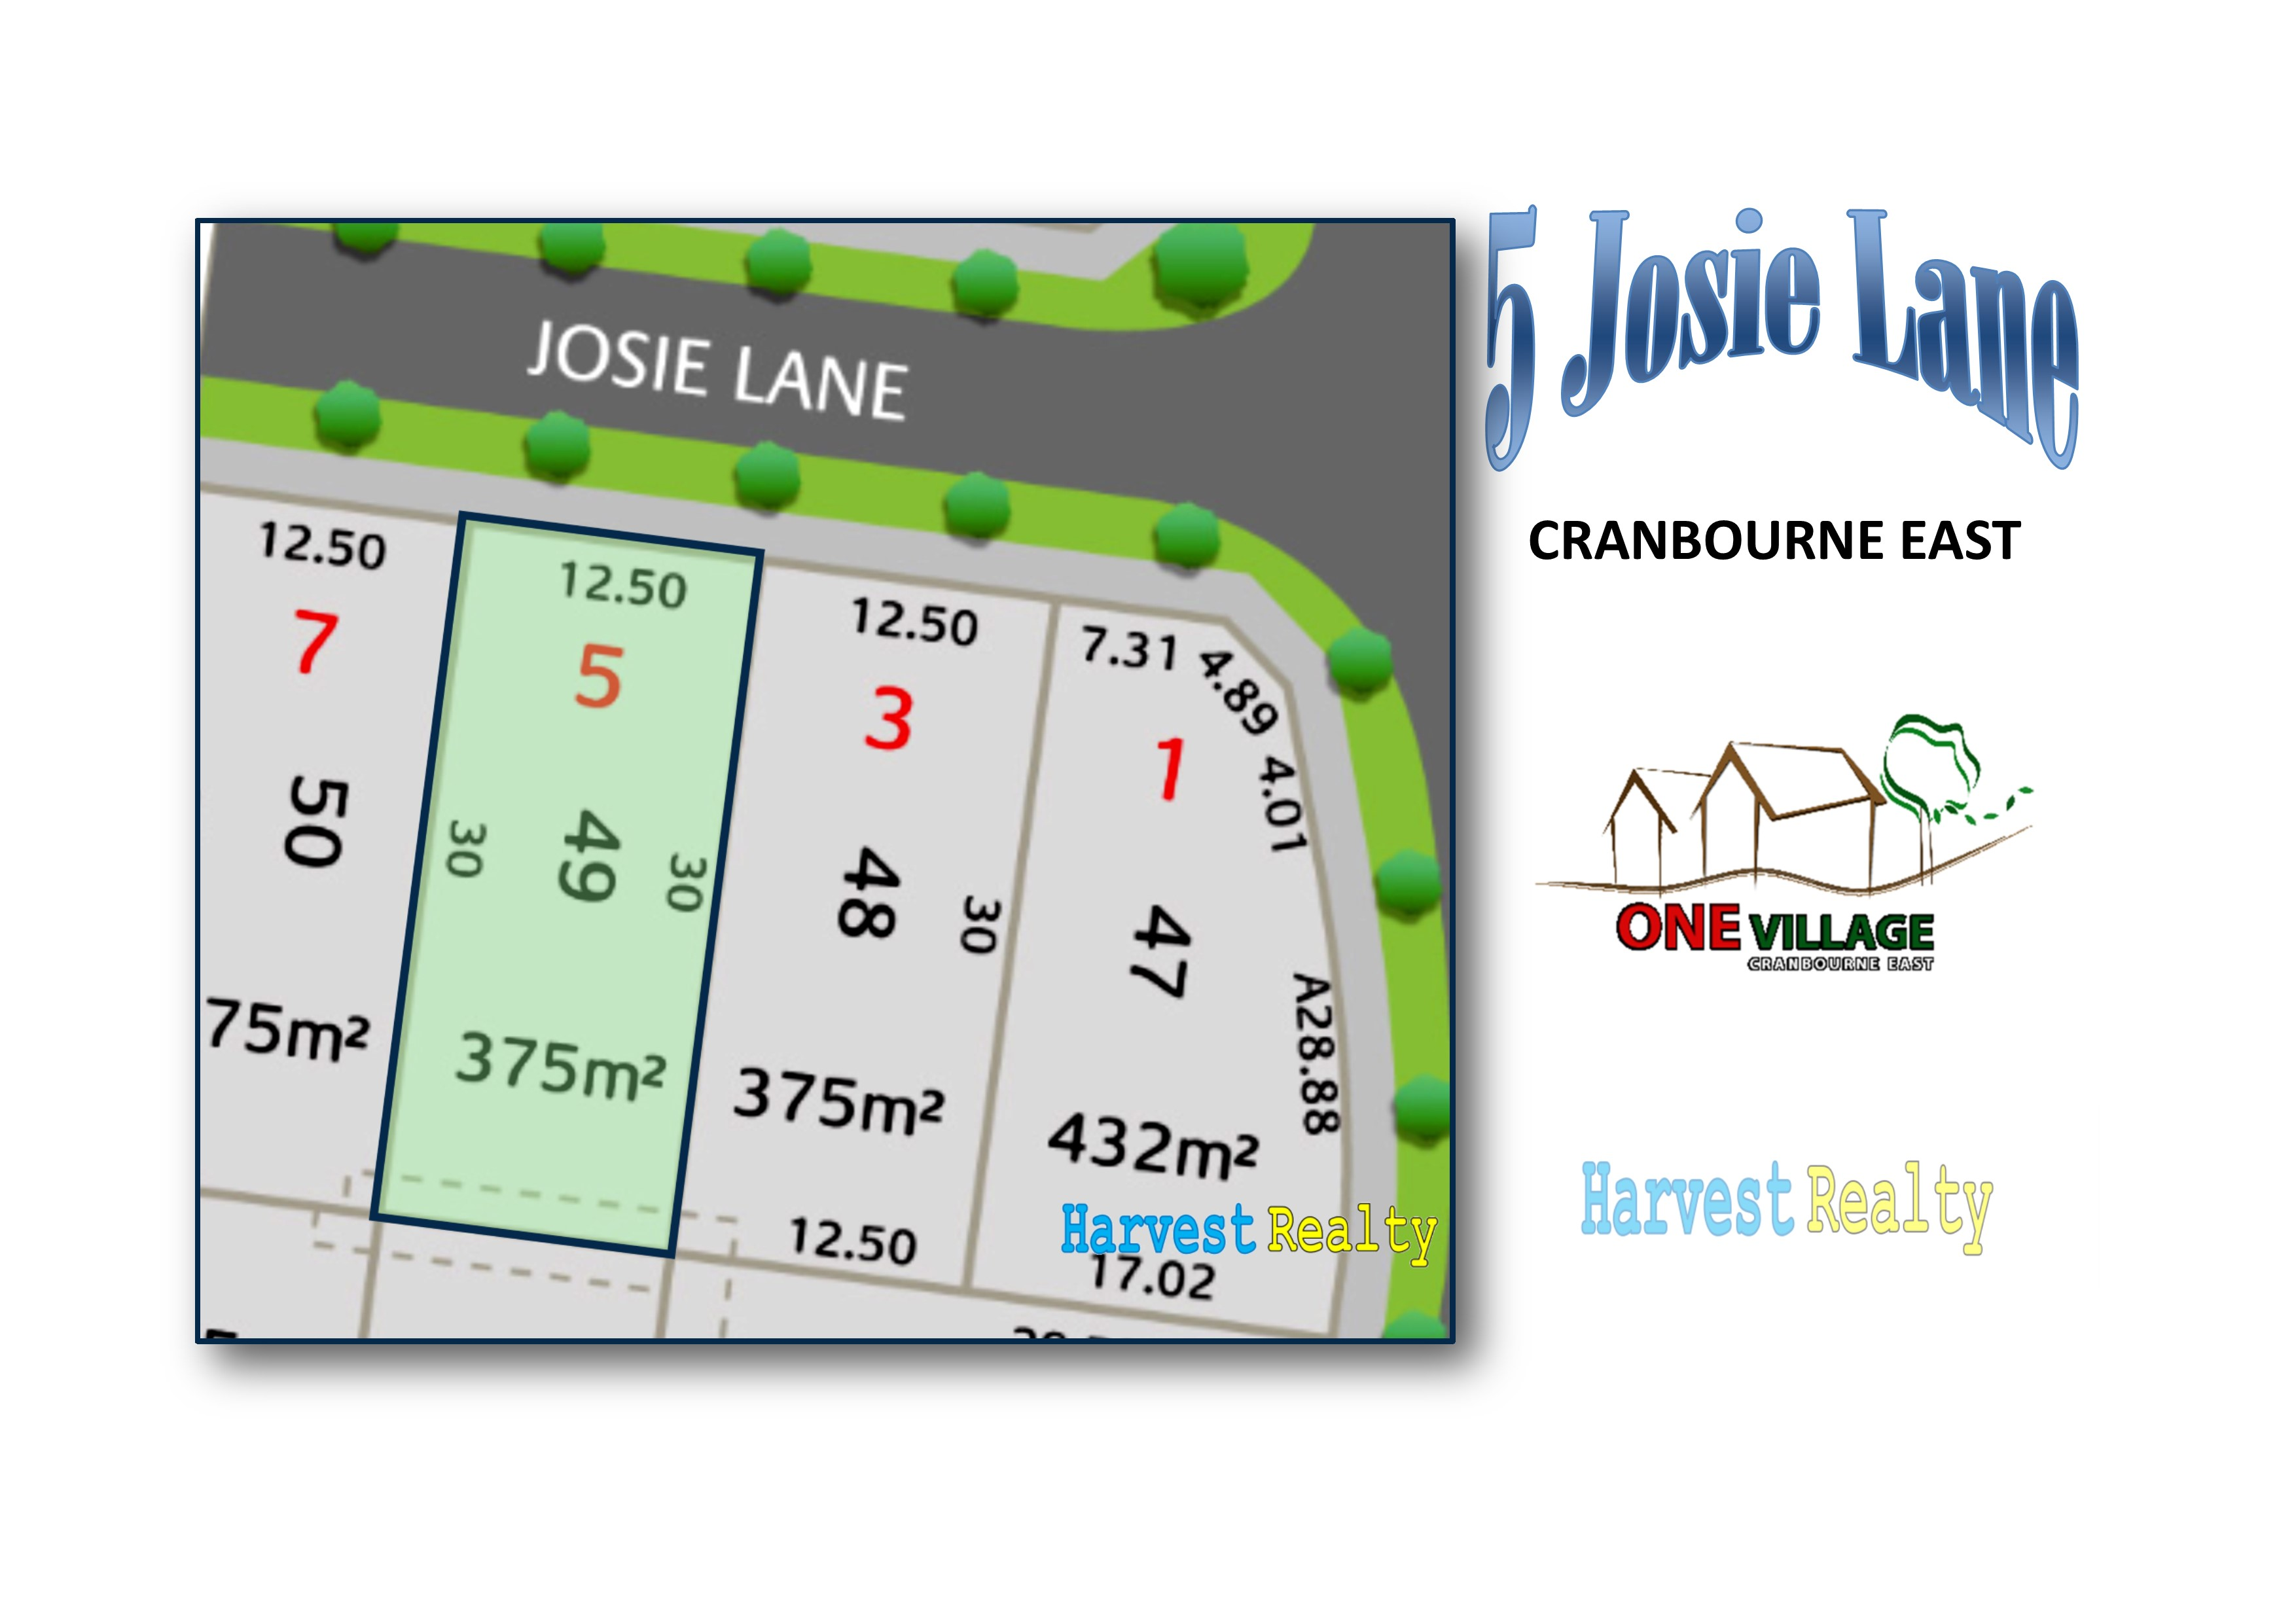 5 Josie Lane CRANBOURNE EAST